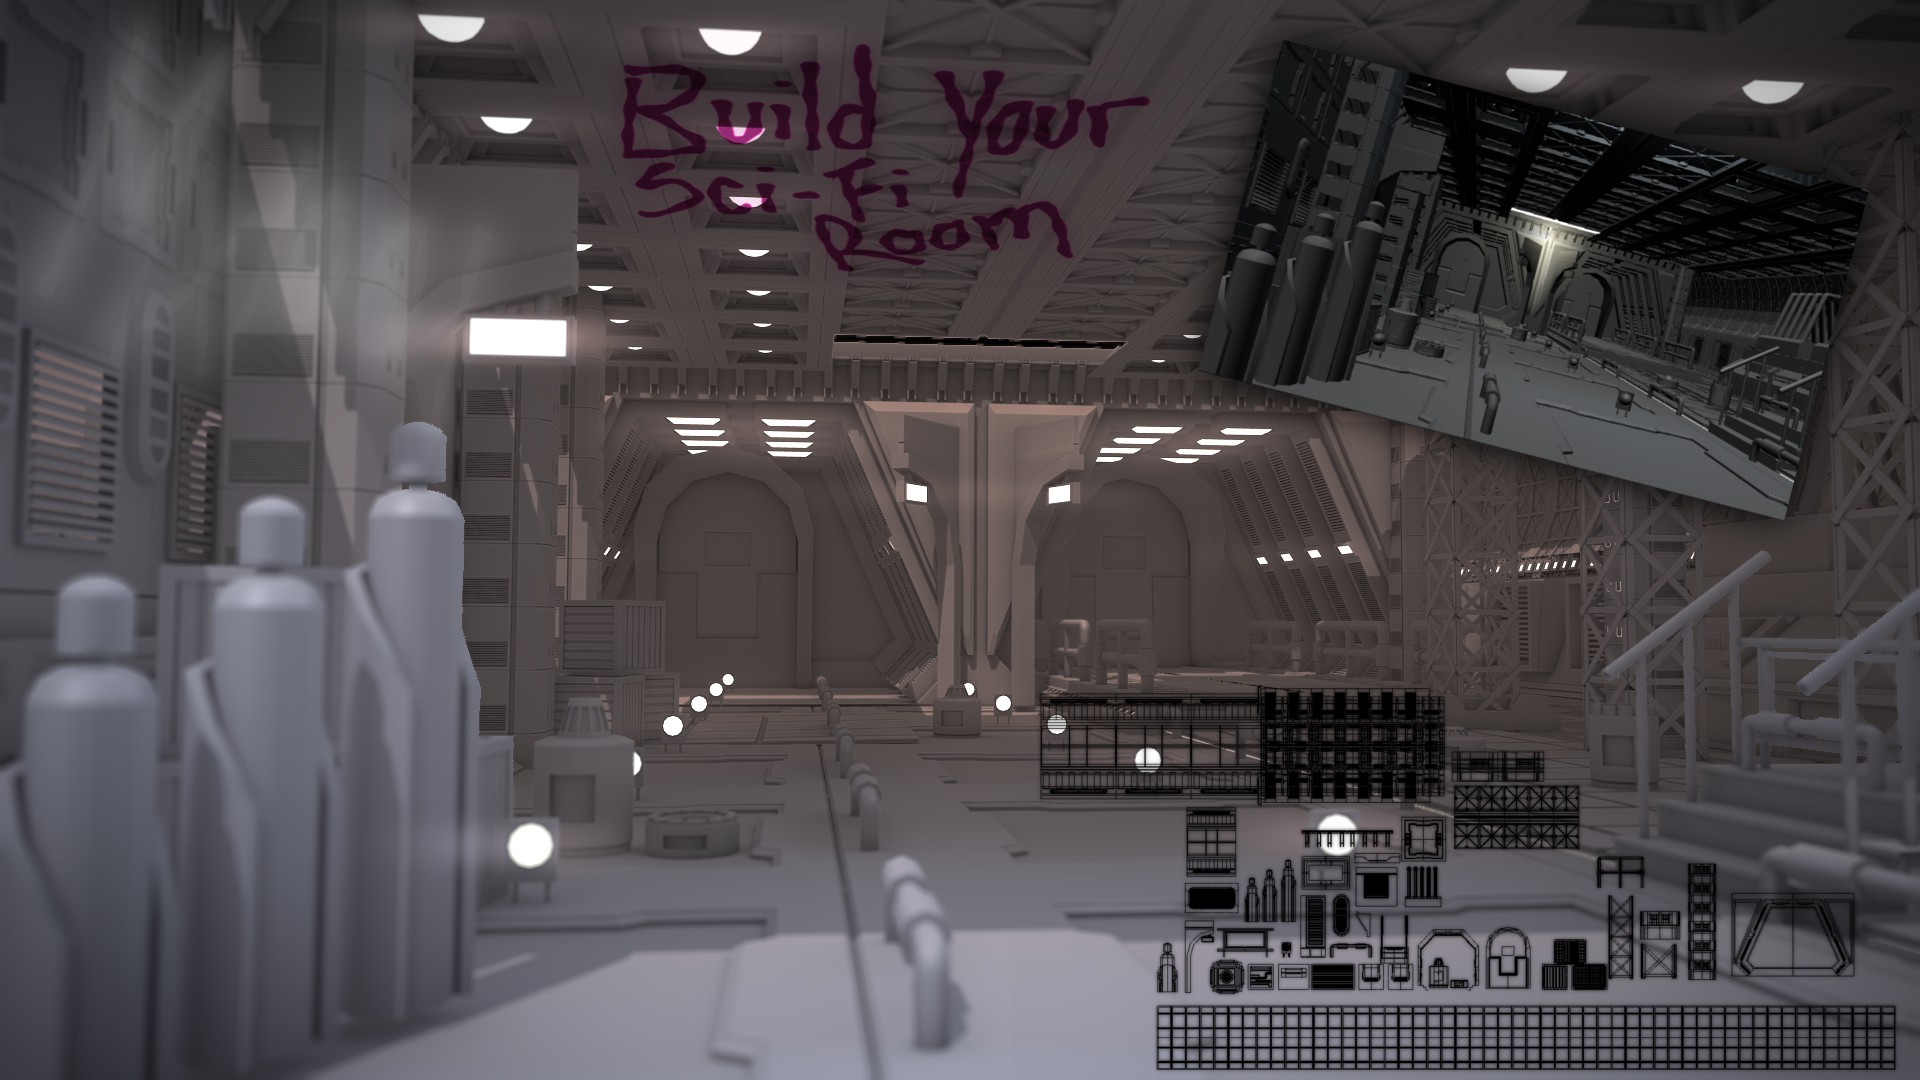 Build Your Own Sci-Fi Room - BlenderNation